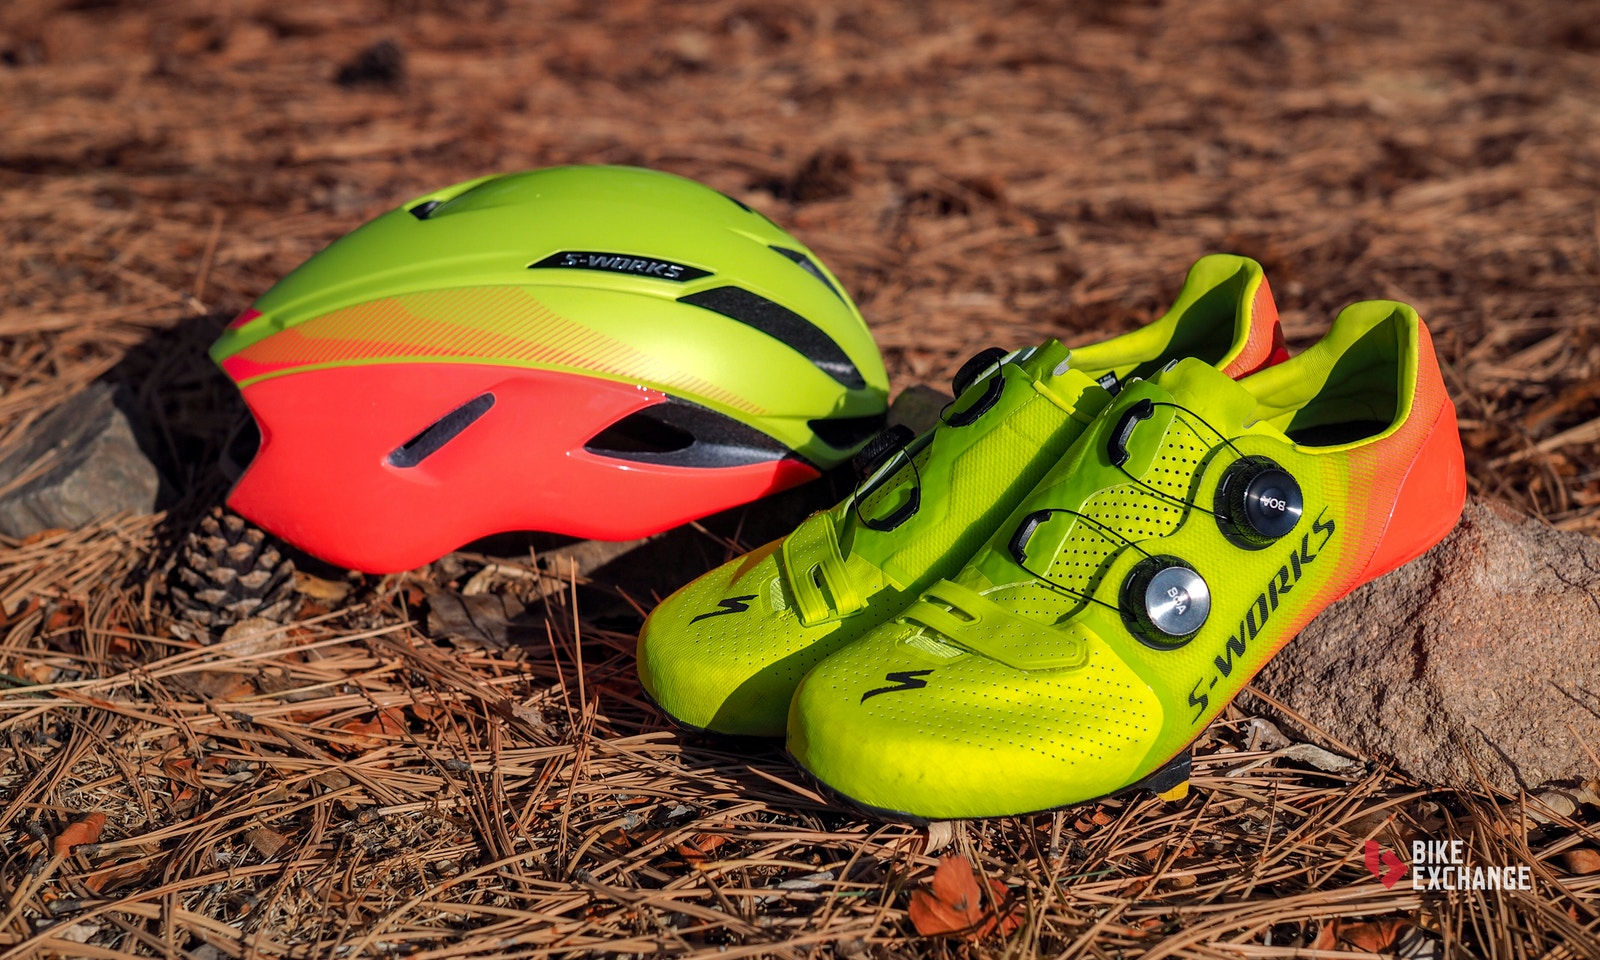 88f2d918b2f 2018 Specialized S-Works 7 shoes and Evade II helmet – Ten Things to Know